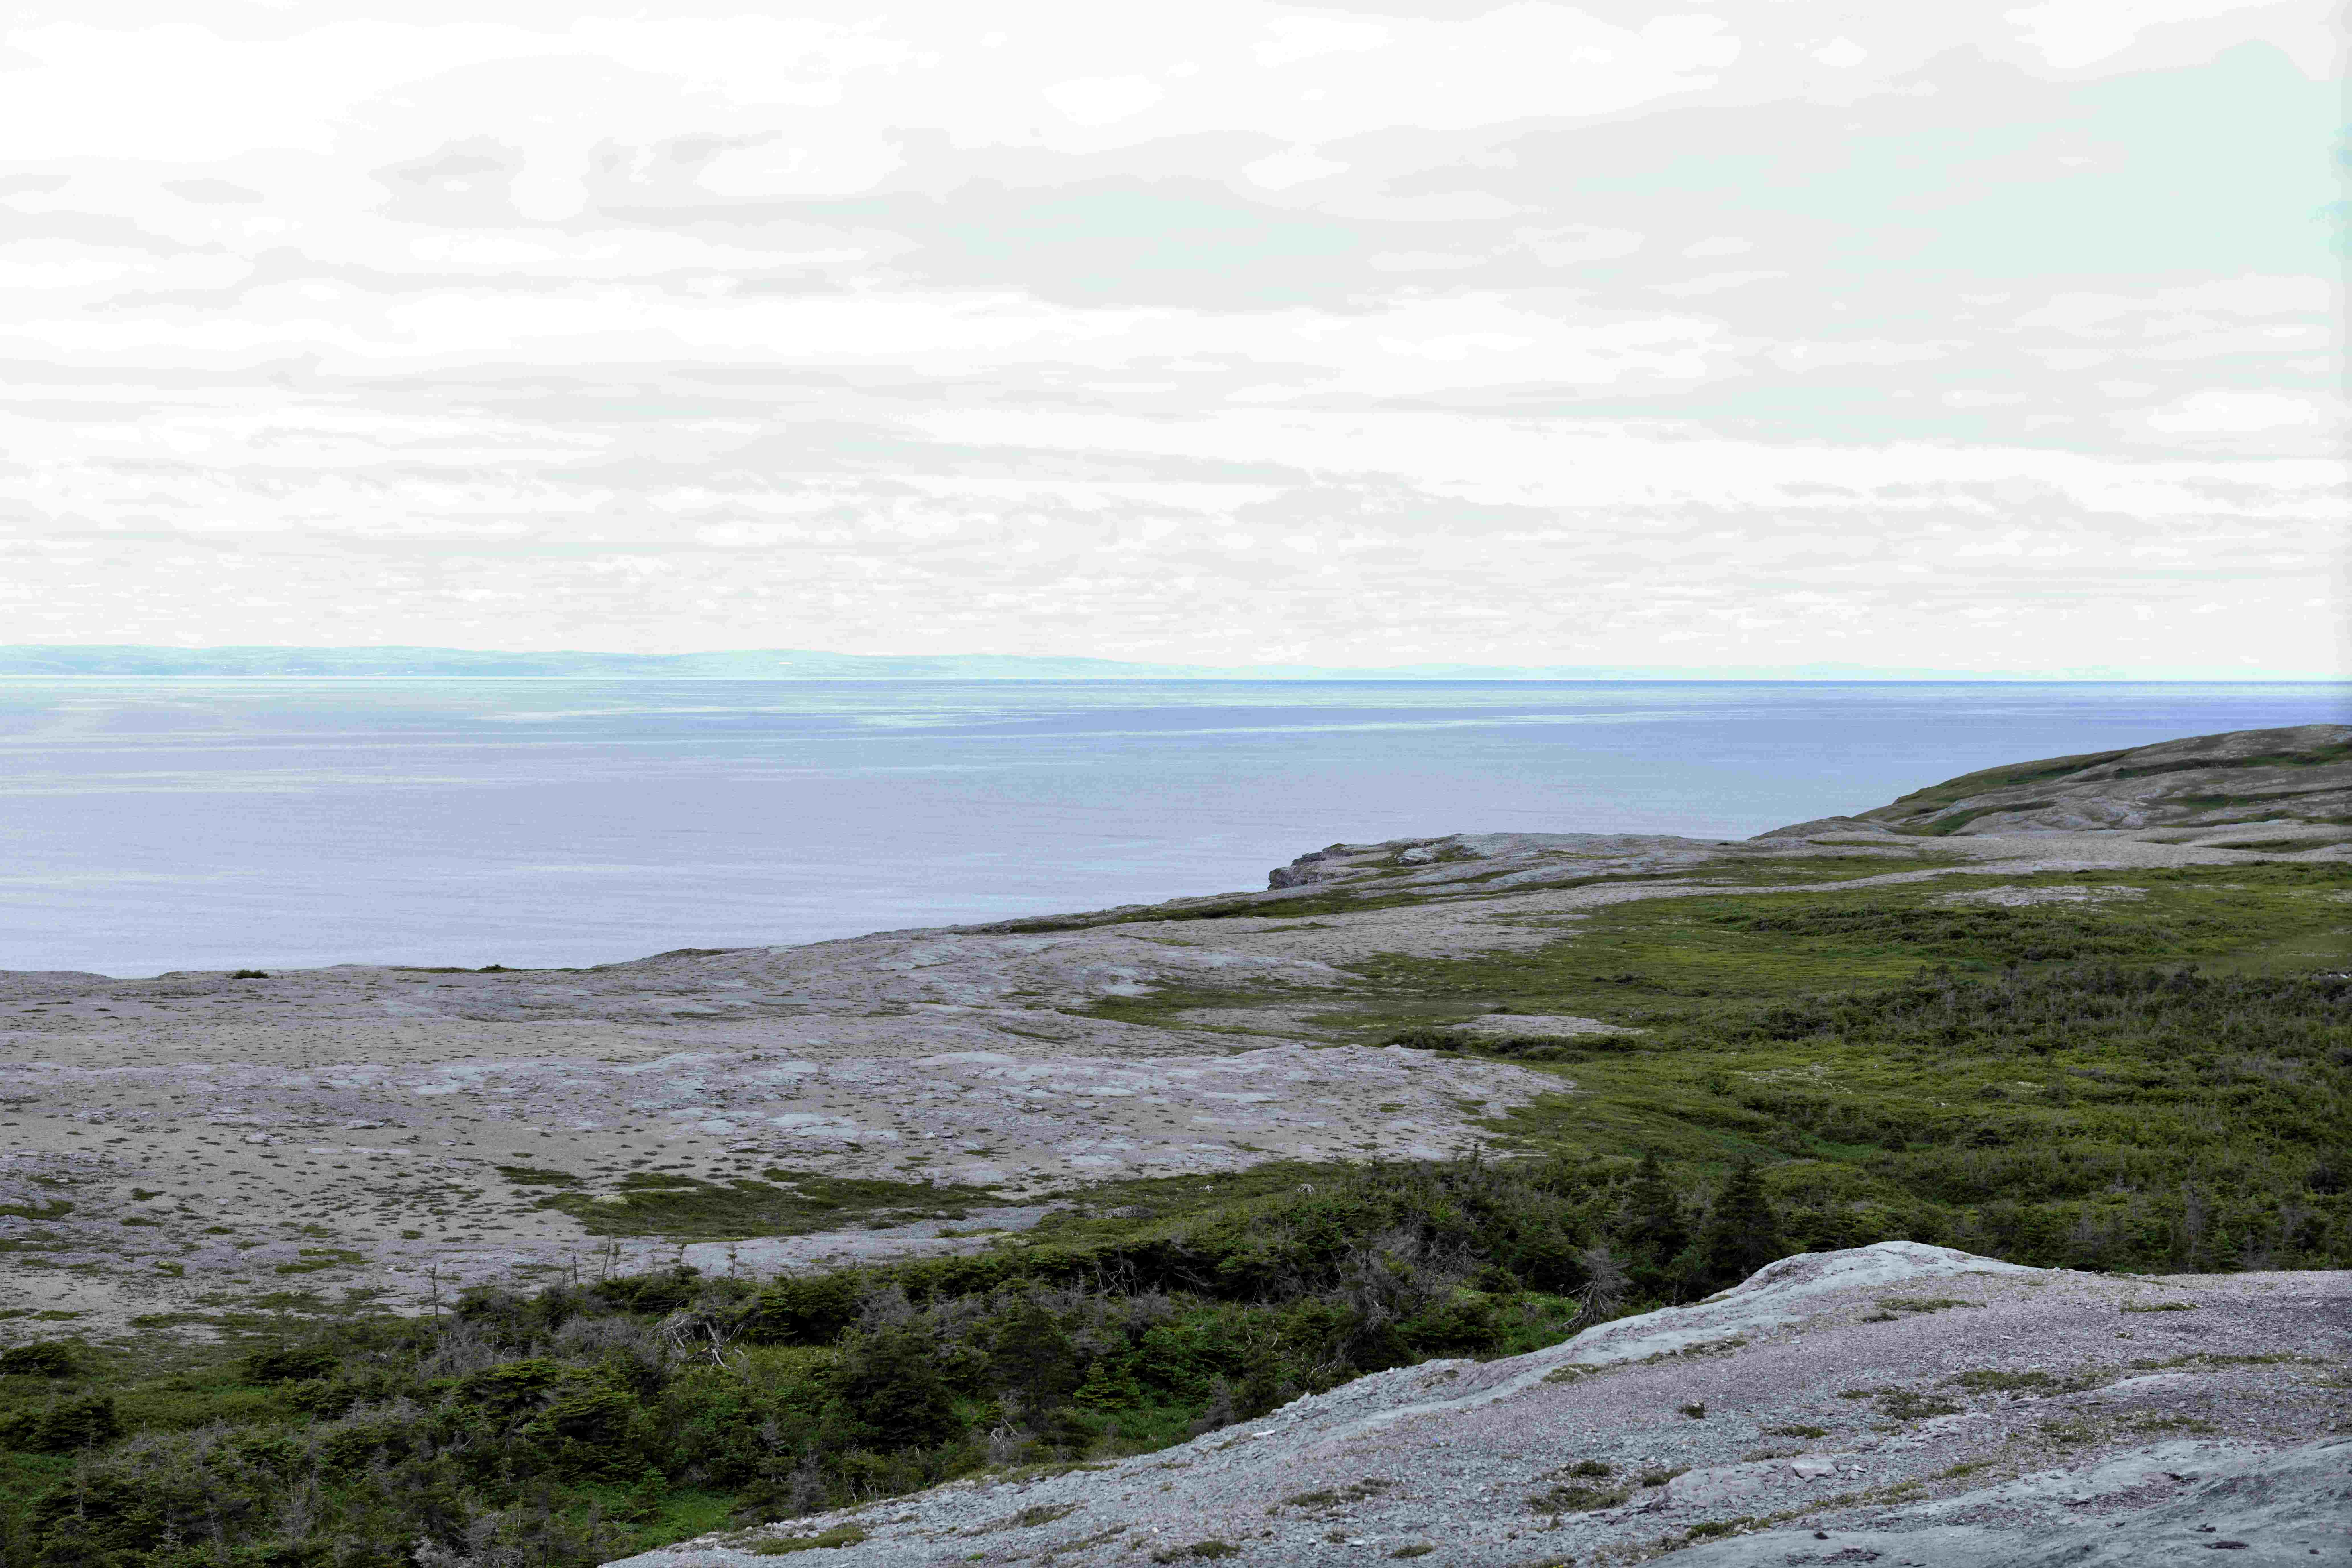 Looking over at Labrador